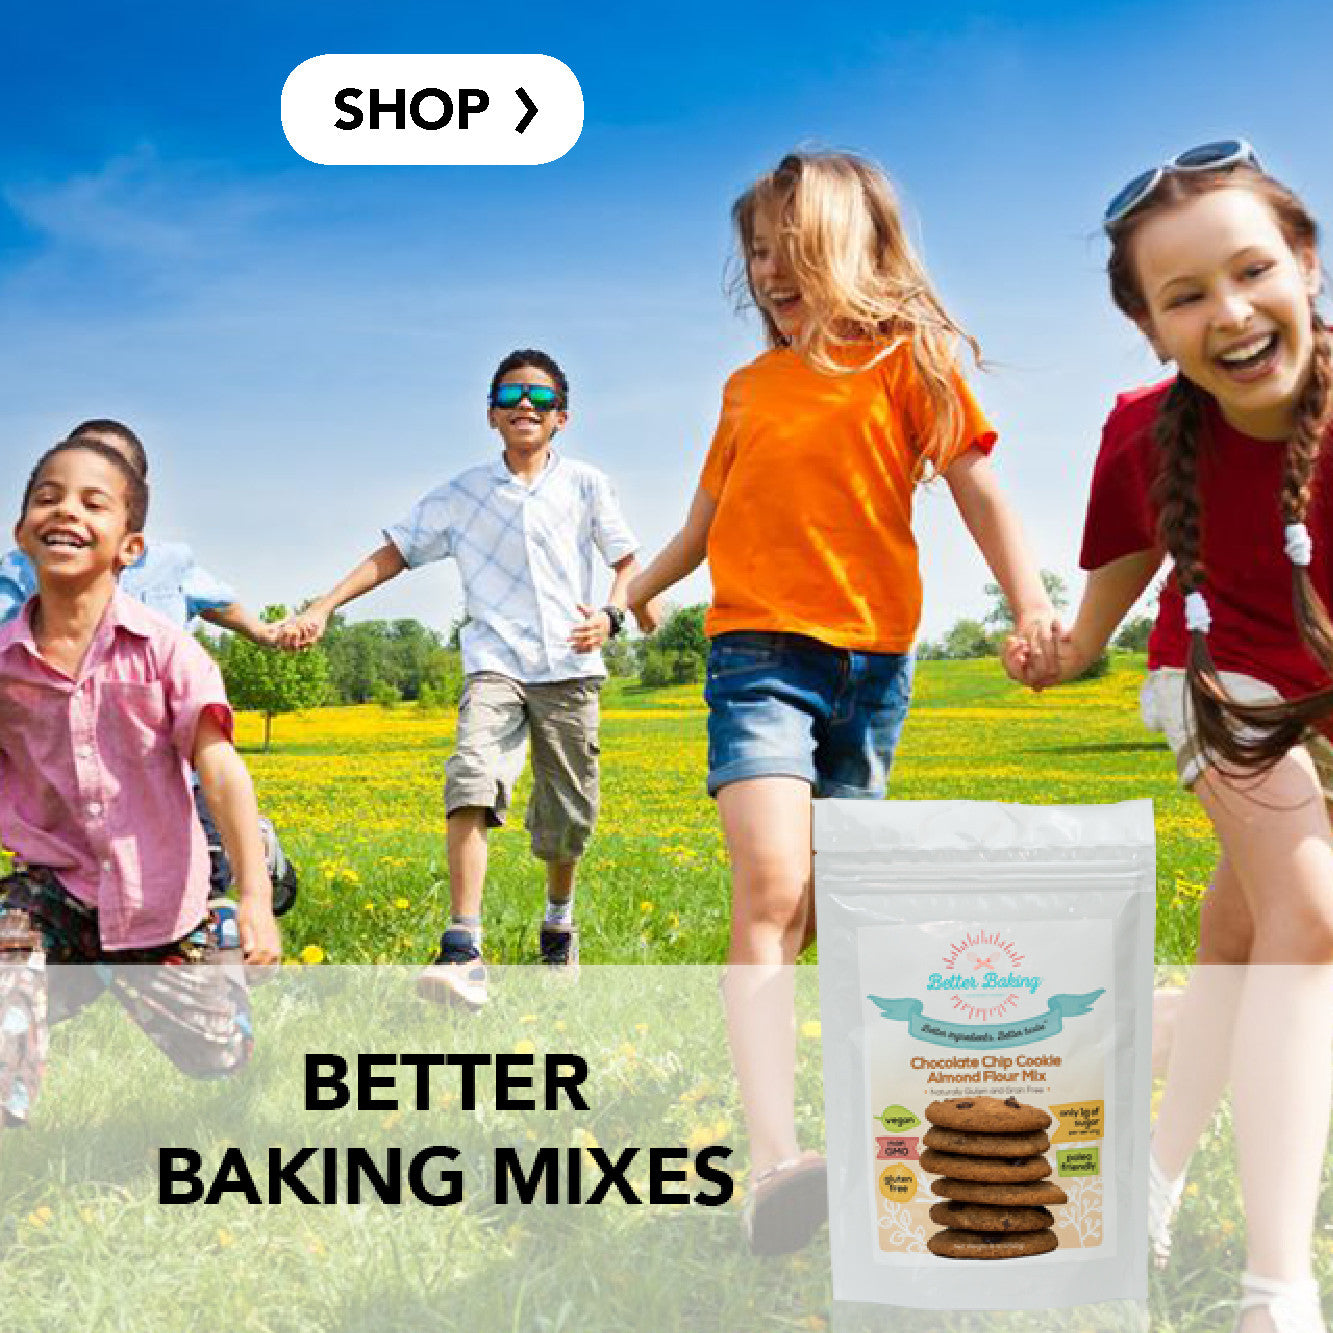 Better Baking Mixes